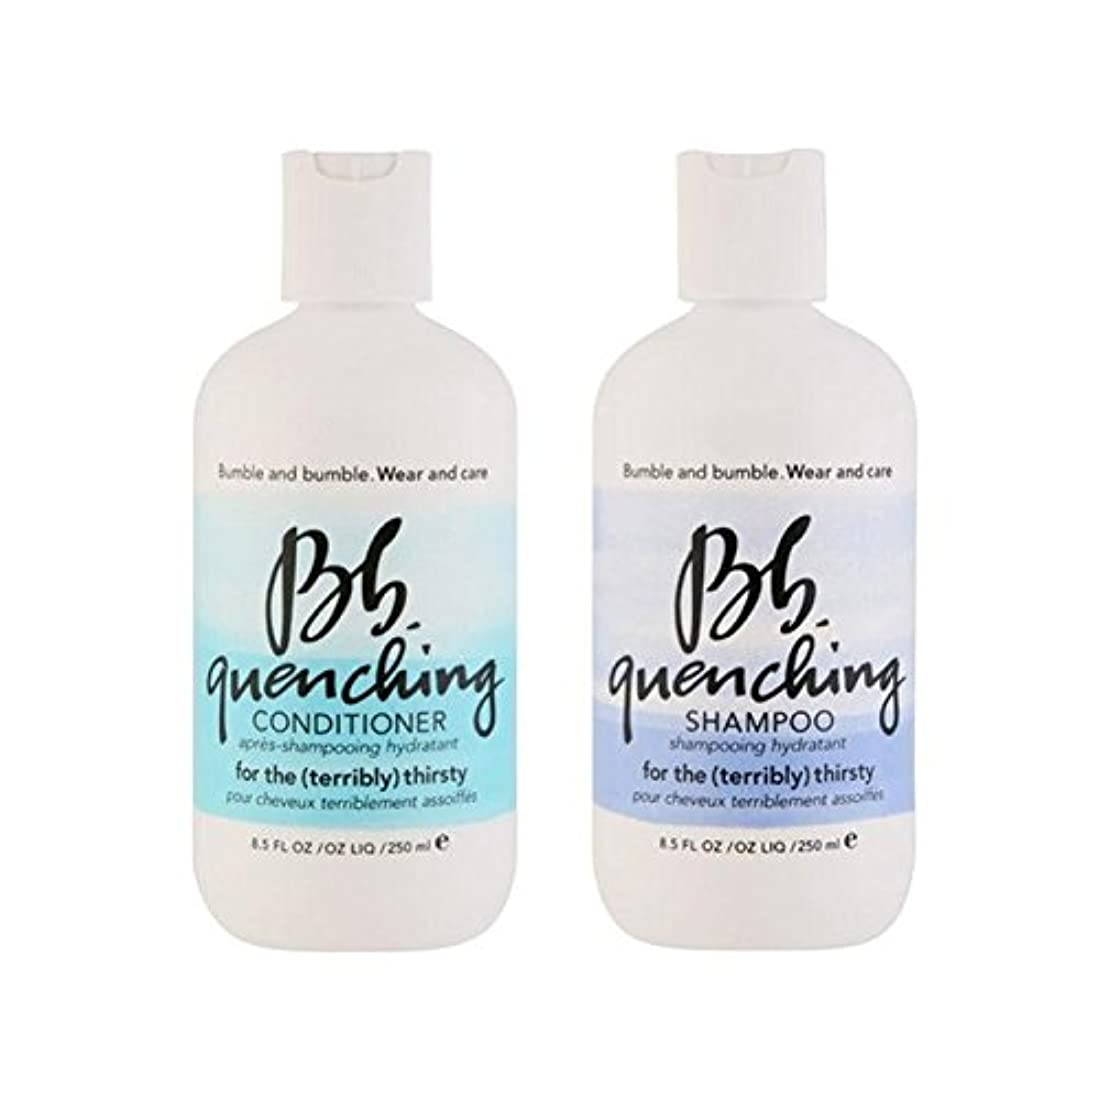 Bb Wear And Care Quenching Duo - Shampoo And Conditioner (Pack of 6) - シャンプーとコンディショナー - デュオを急冷着用し、世話 x6 [並行輸入品]